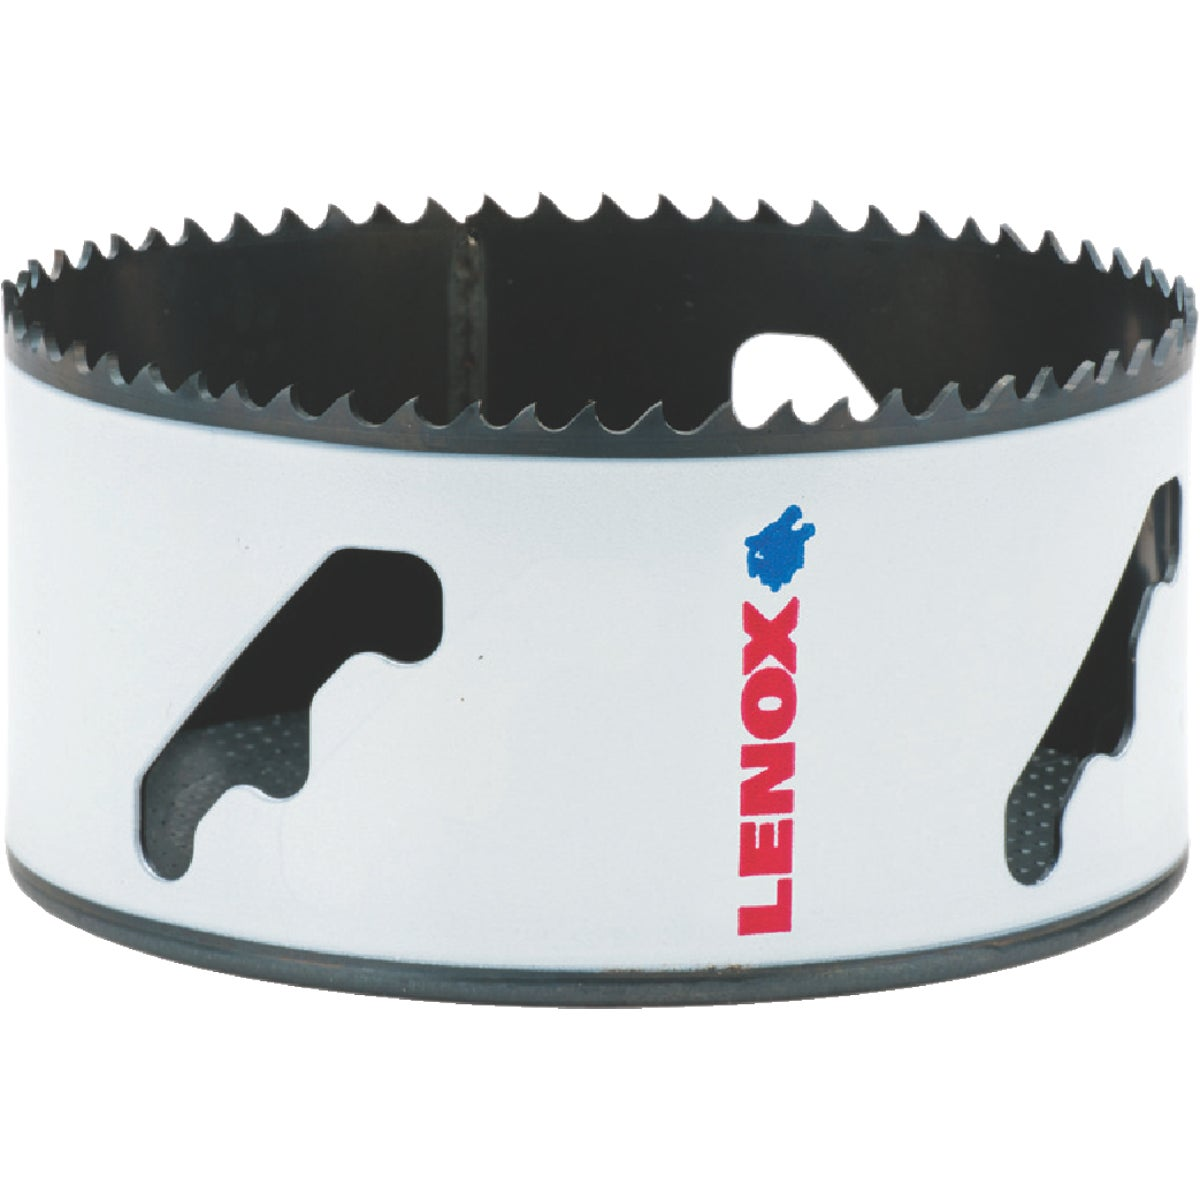 "4-1/8"" HOLE SAW - 1772018 by Lenox"